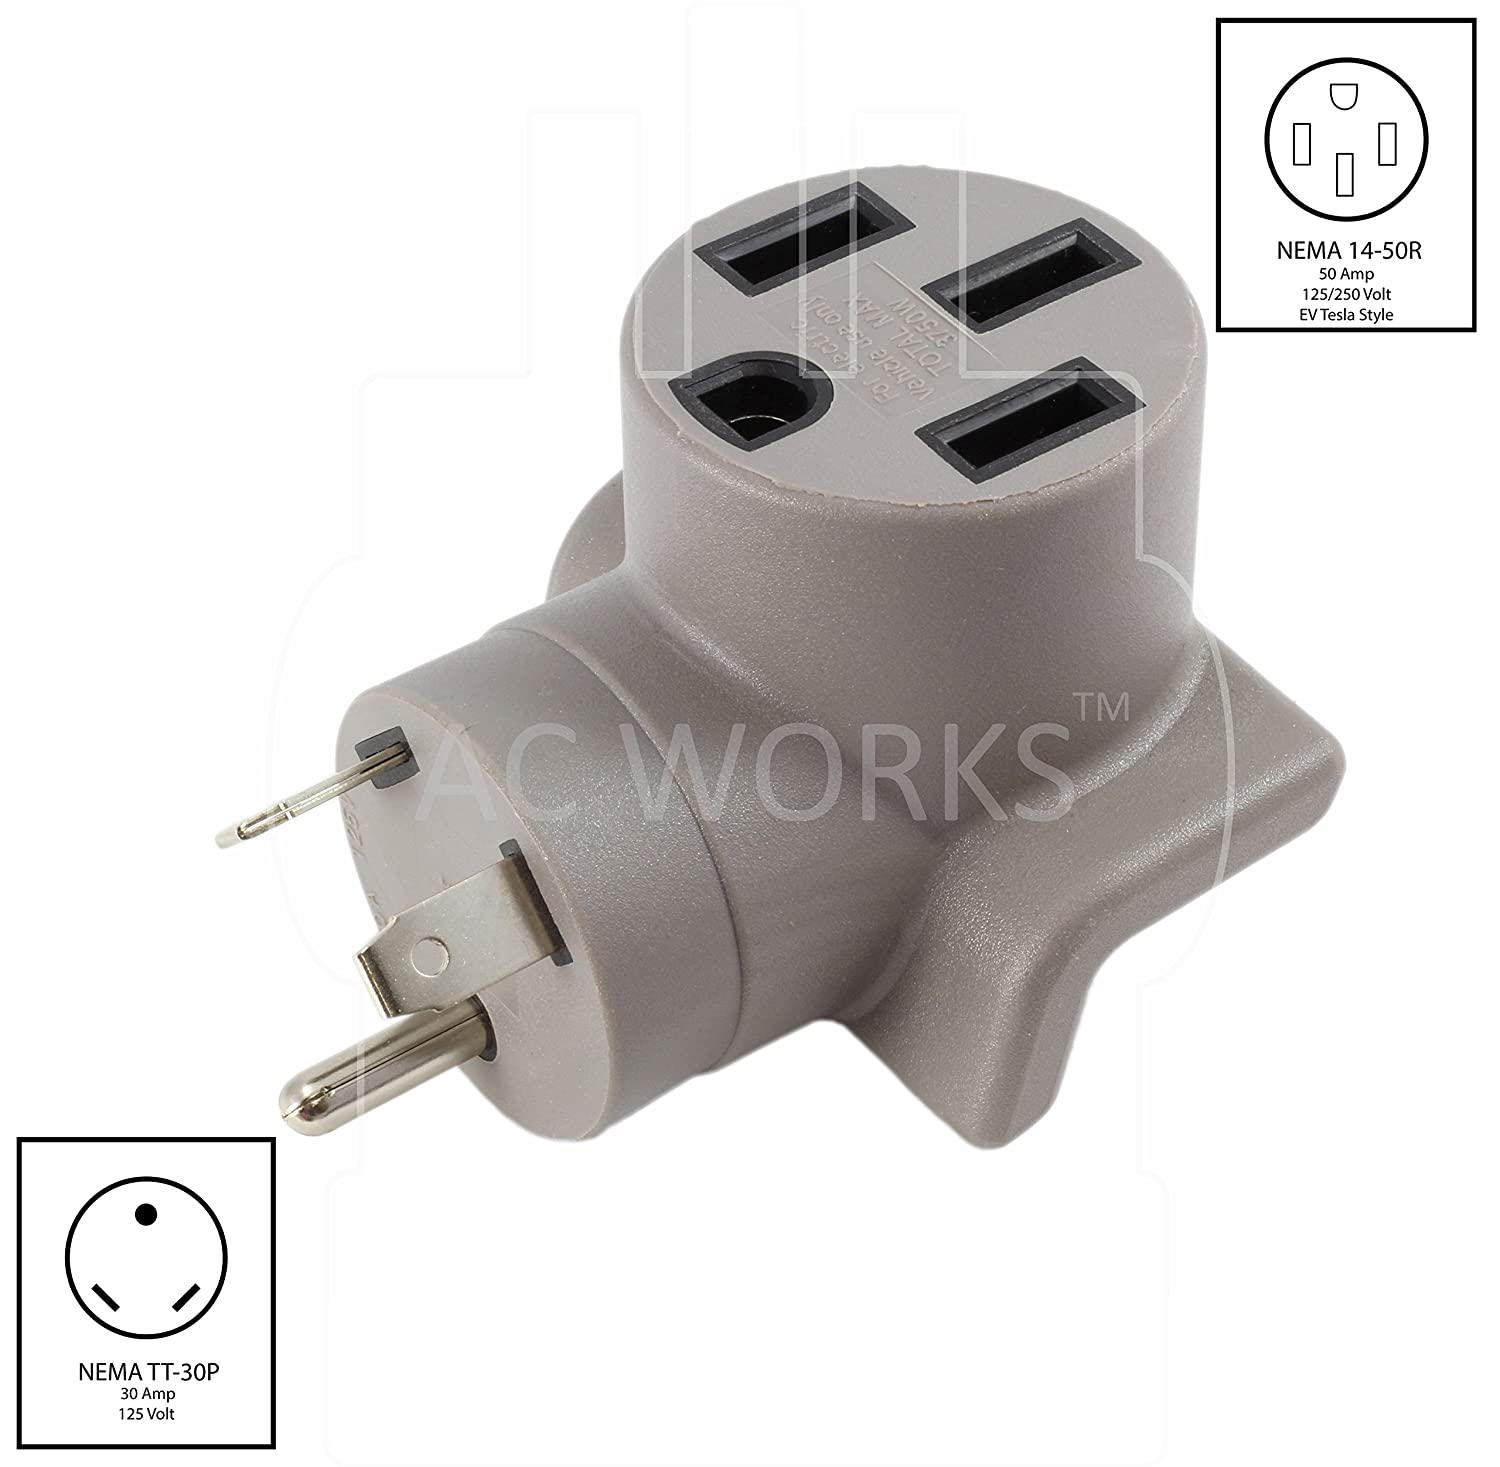 Ac Works Ev Charging Adapter For Tesla Use Tt 30 Rv 30a To 50 Breaker Box Wiring Diagram On Amp 20 Power Out